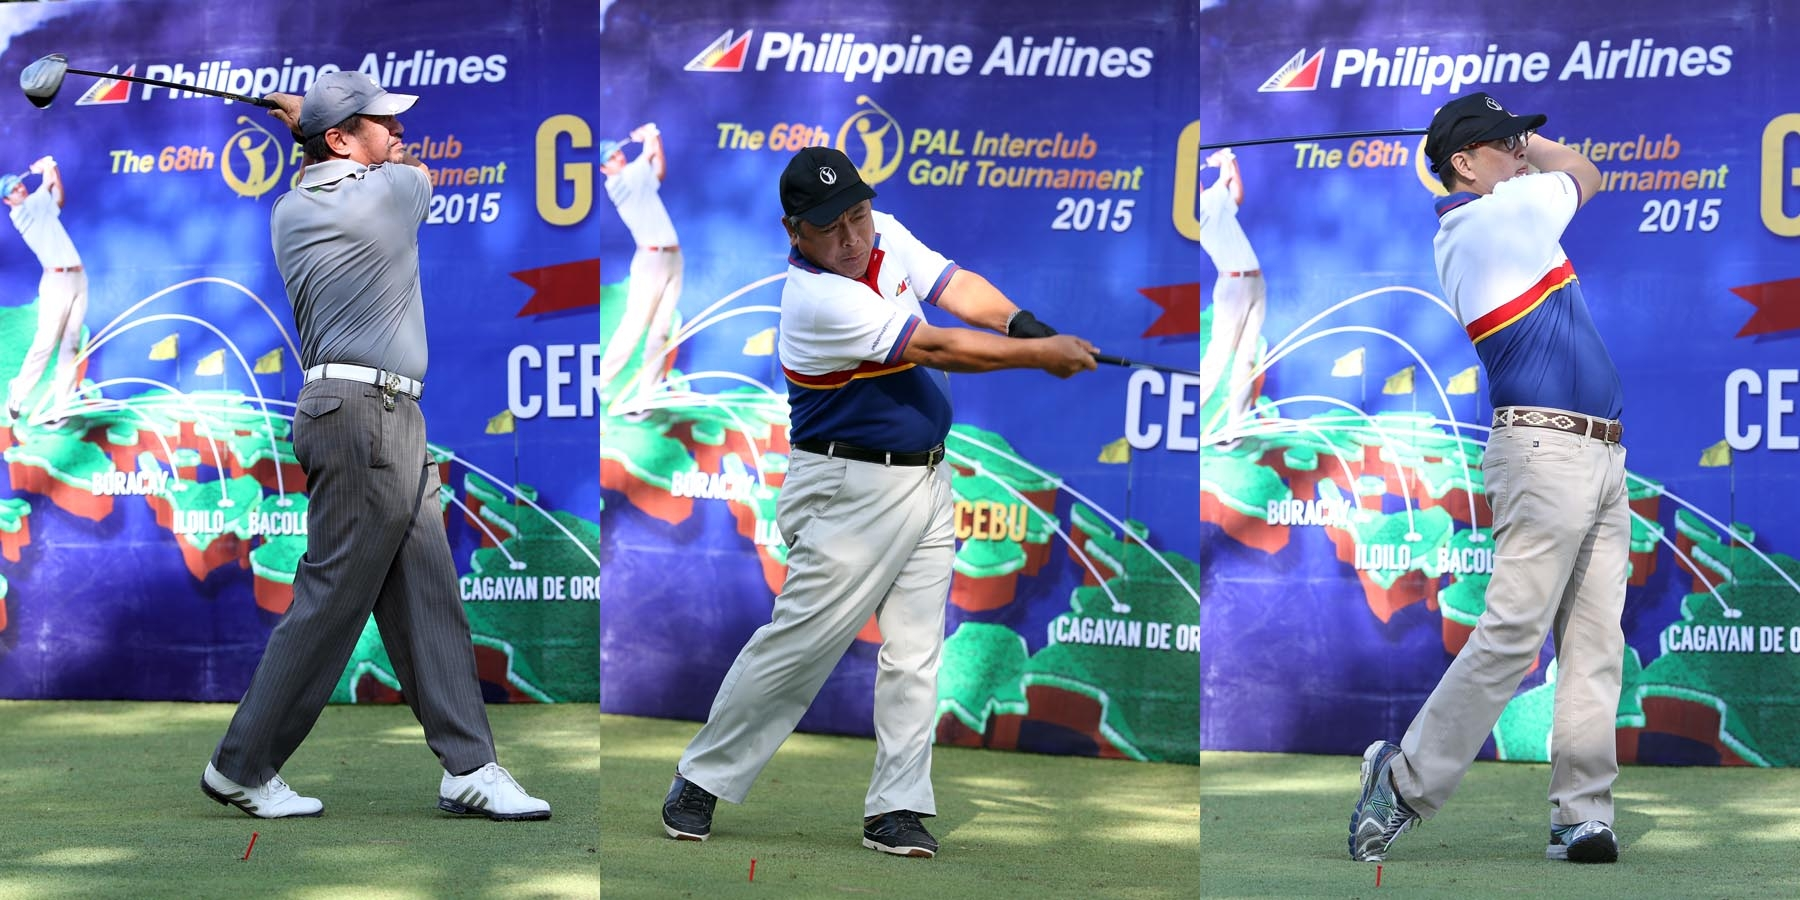 PAL SENIORS INTERCLUB. The ceremonial tee-off to kick off this year's Philippine Airlines (PAL) Interclub Seniors tournament in Cebu City was lead by PAL President Jaime J. Bautista (center), PAL Senior VP Ismael Augusto Gozon (right), and Major Gen. Renato Sanchez, general manager of Mactan Island Golf Club. Play starts Feb. 19 till 22. The Regular Men's Interclub gets underway Feb. 25 to 28.